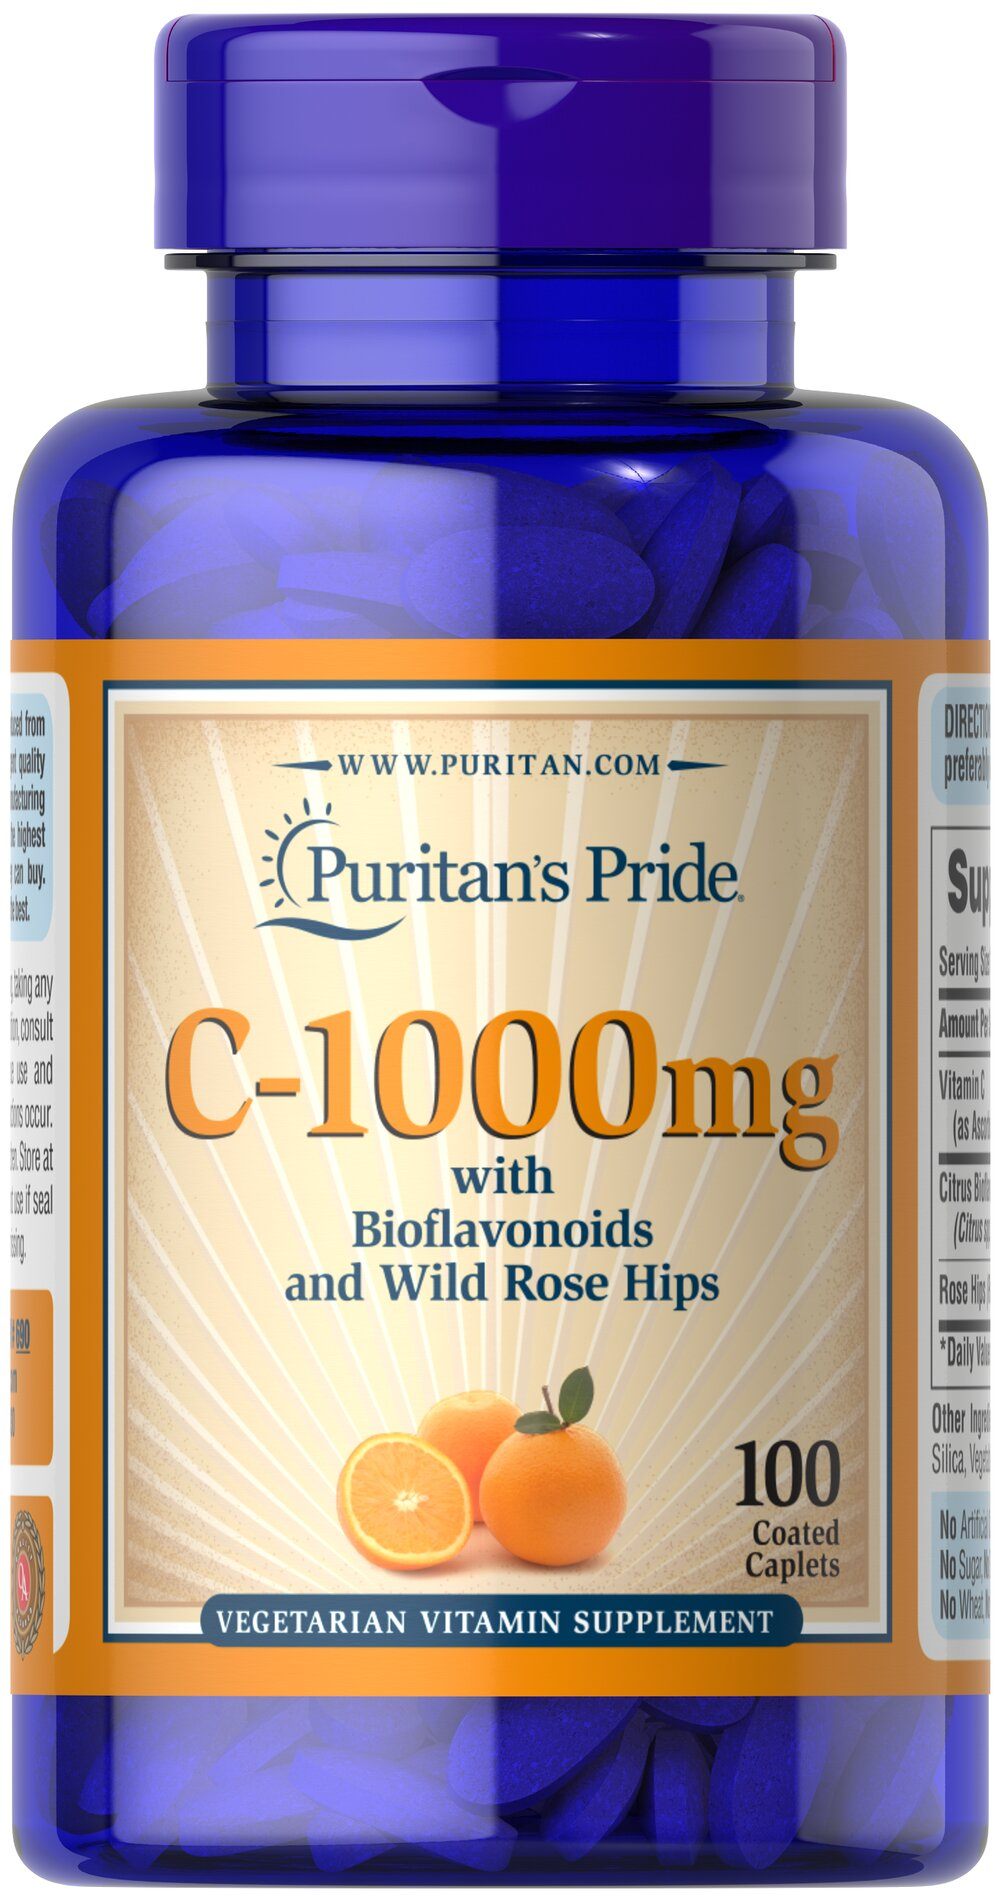 Vitamin C-1000 mg with Bioflavonoids & Rose Hips <p>Vitamin C is essential to many functions in the body and is one of the leading vitamins for immune support and helps fight cell-damaging free radicals.** Our product also includes Rose Hips, which help the body absorb and utilize Vitamin C.**</p><p>Offers superior antioxidant support.**</p><p>Supports healthy immune function and promotes well-being.**</p> 100 Caplets 1000 mg $7.99